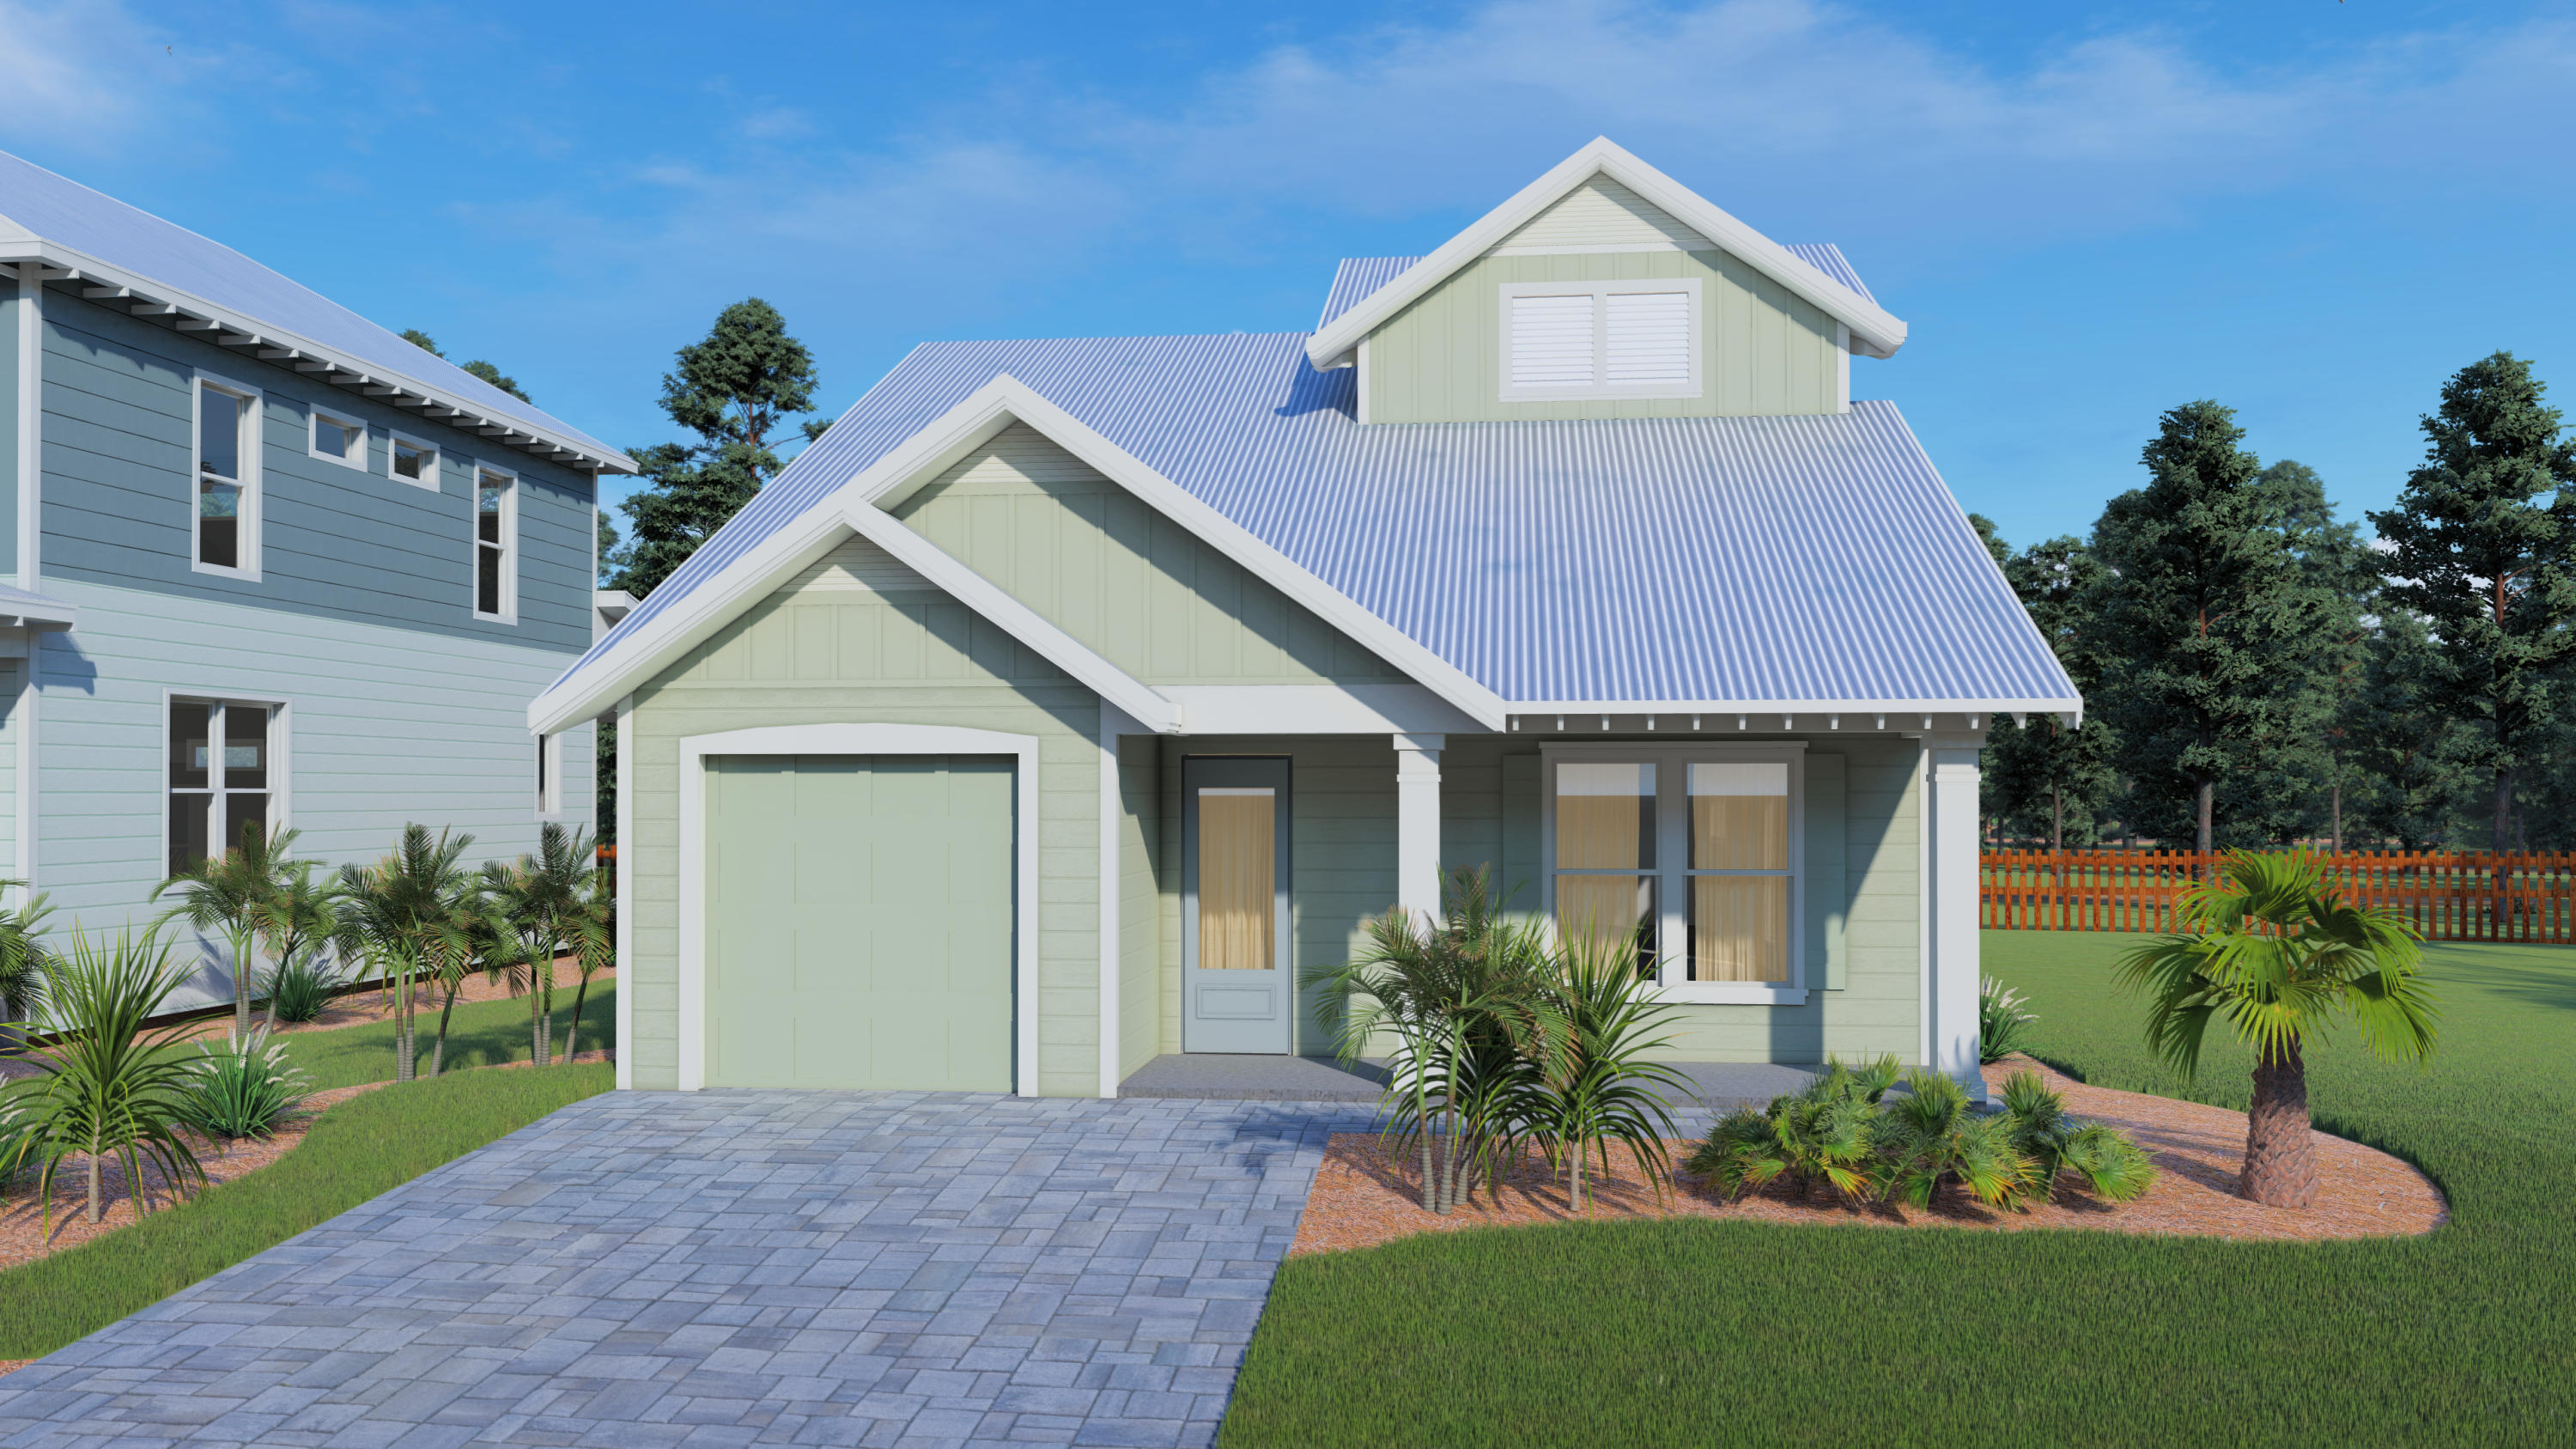 Photo of home for sale at Lot 45 Willow Mist, Inlet Beach FL